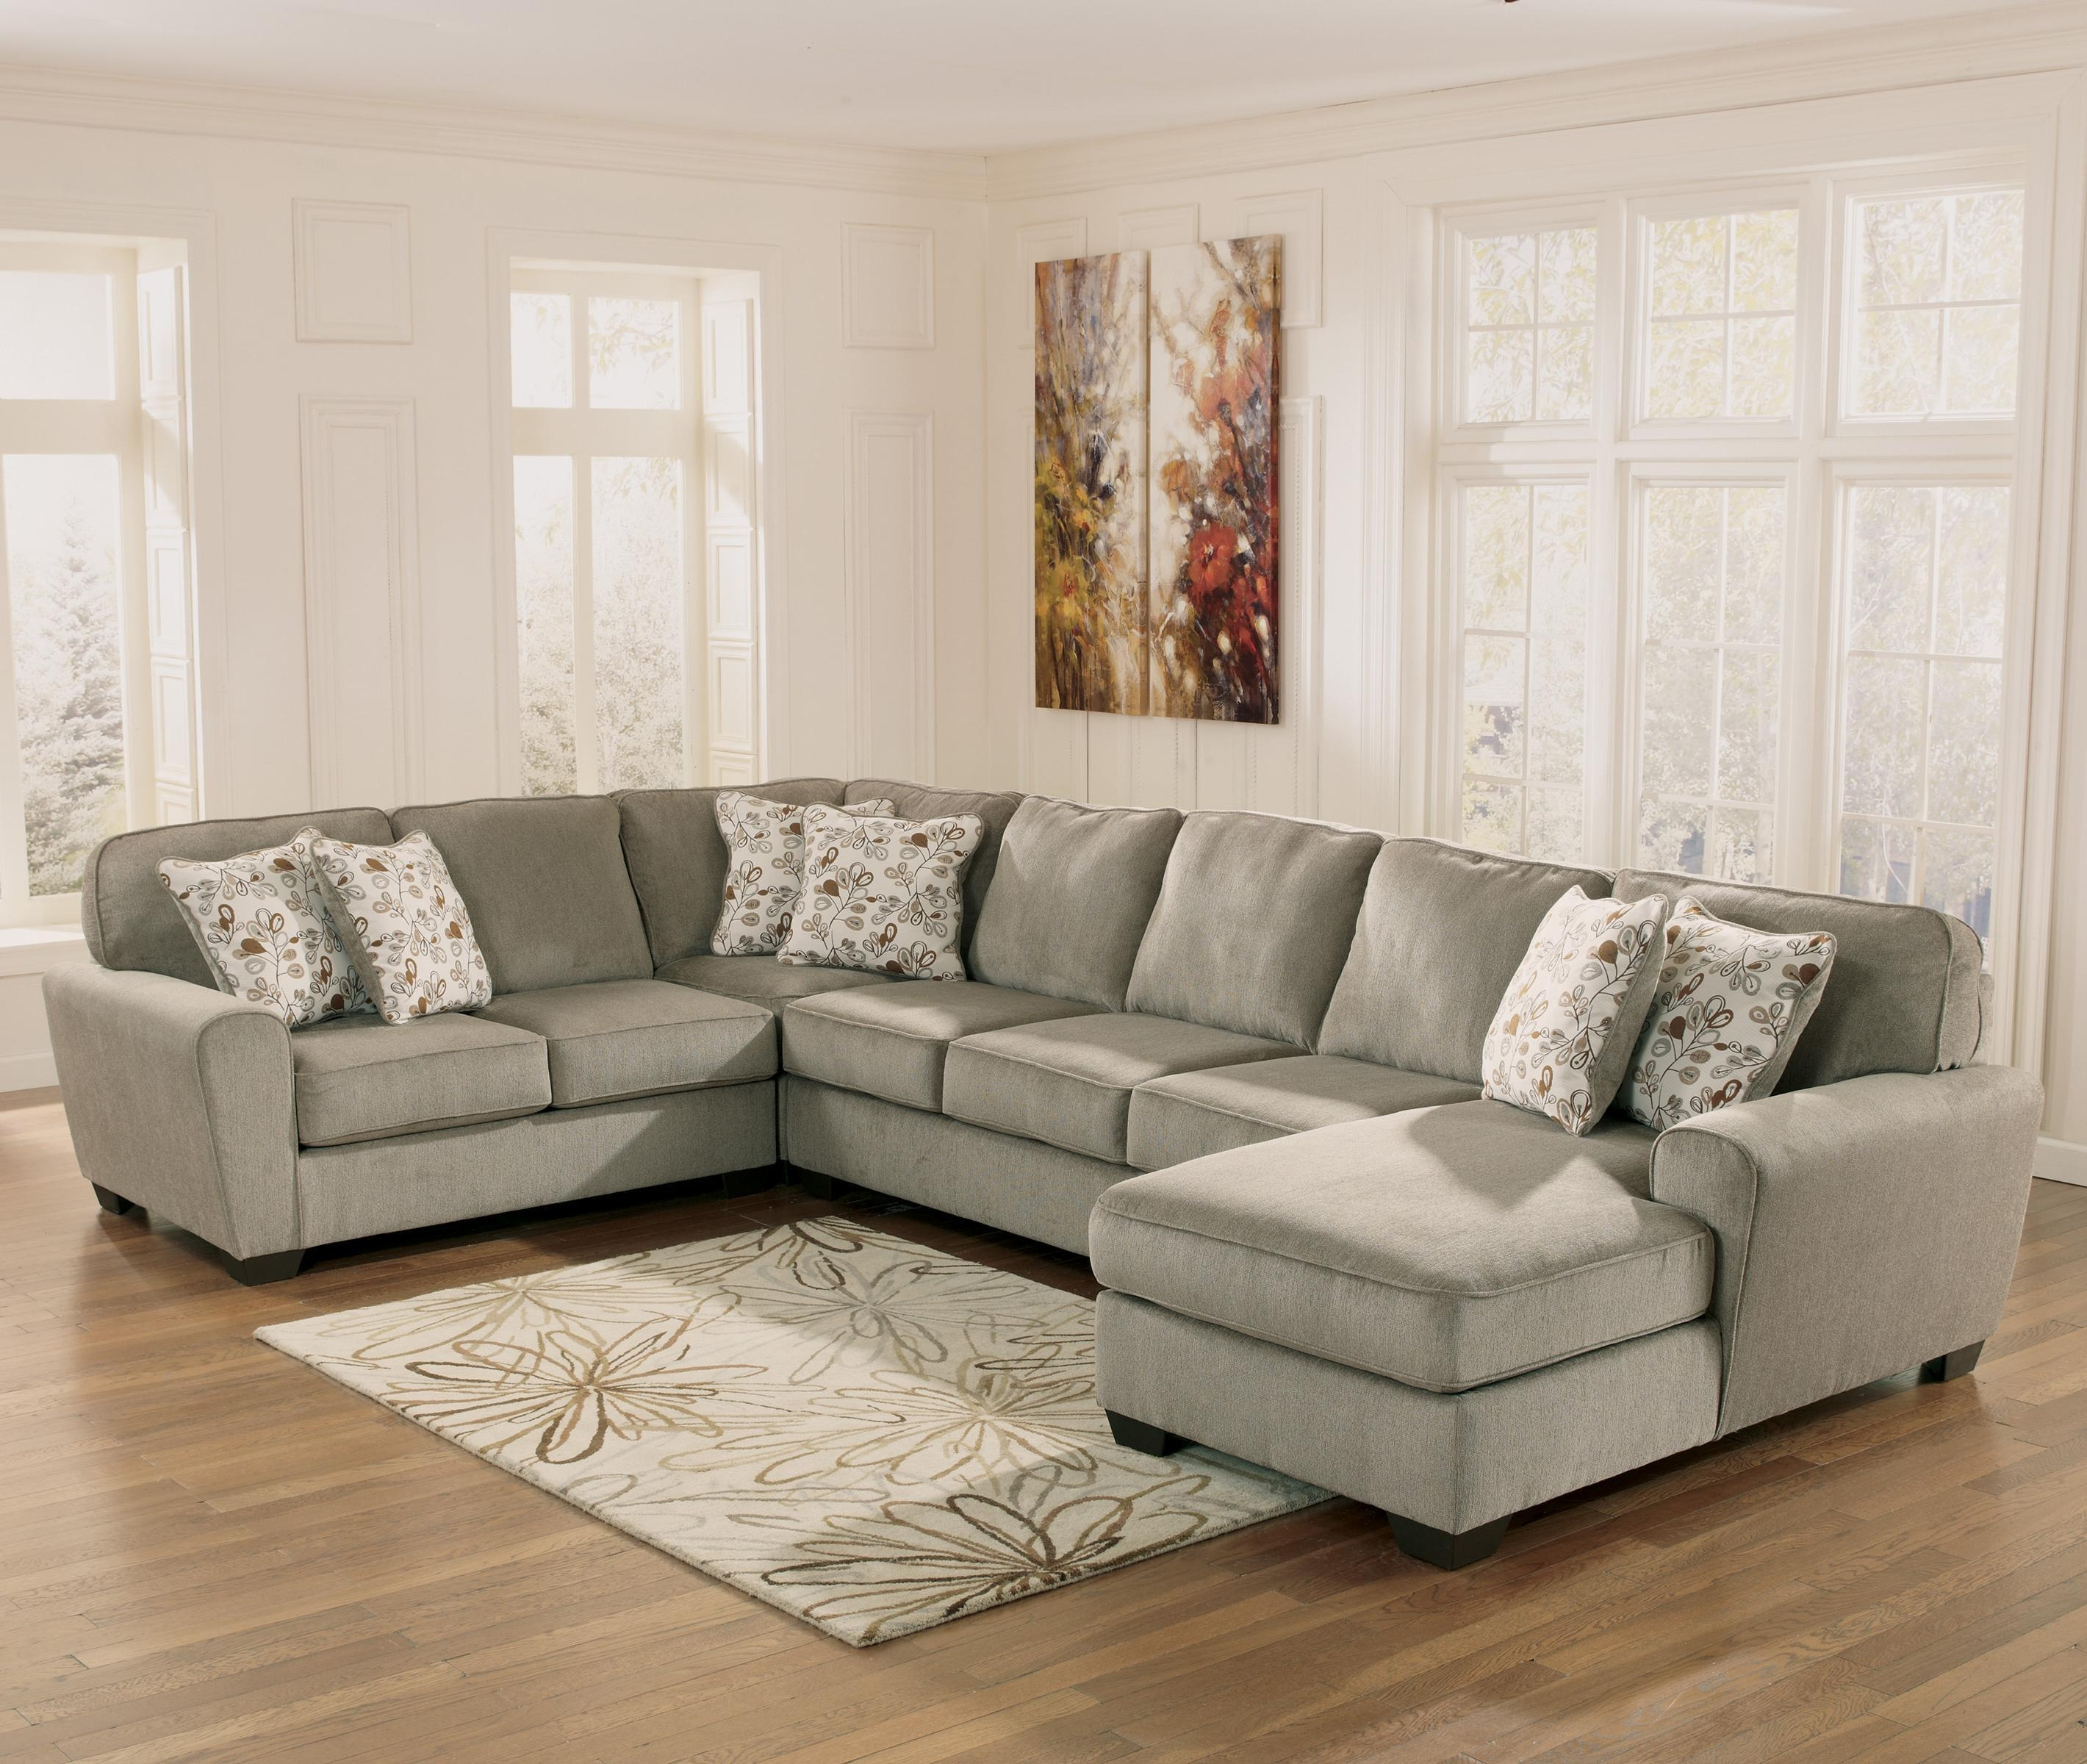 20 Best Ashley Furniture Corduroy Sectional Sofas